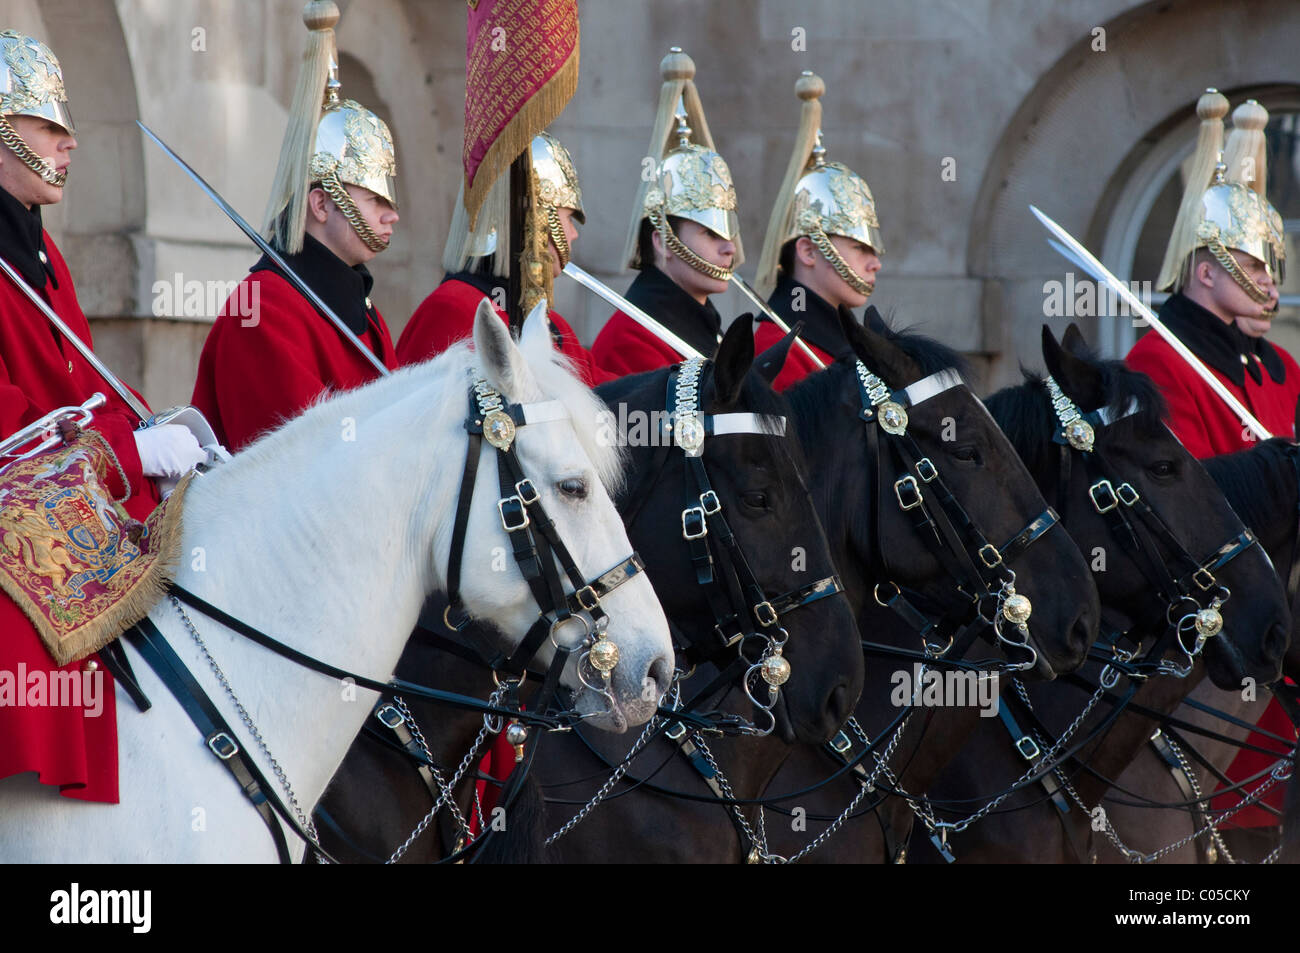 The Queen's lifeguards on horseback during 'changing of the guard' at horse guards parade, London, England. Stock Photo